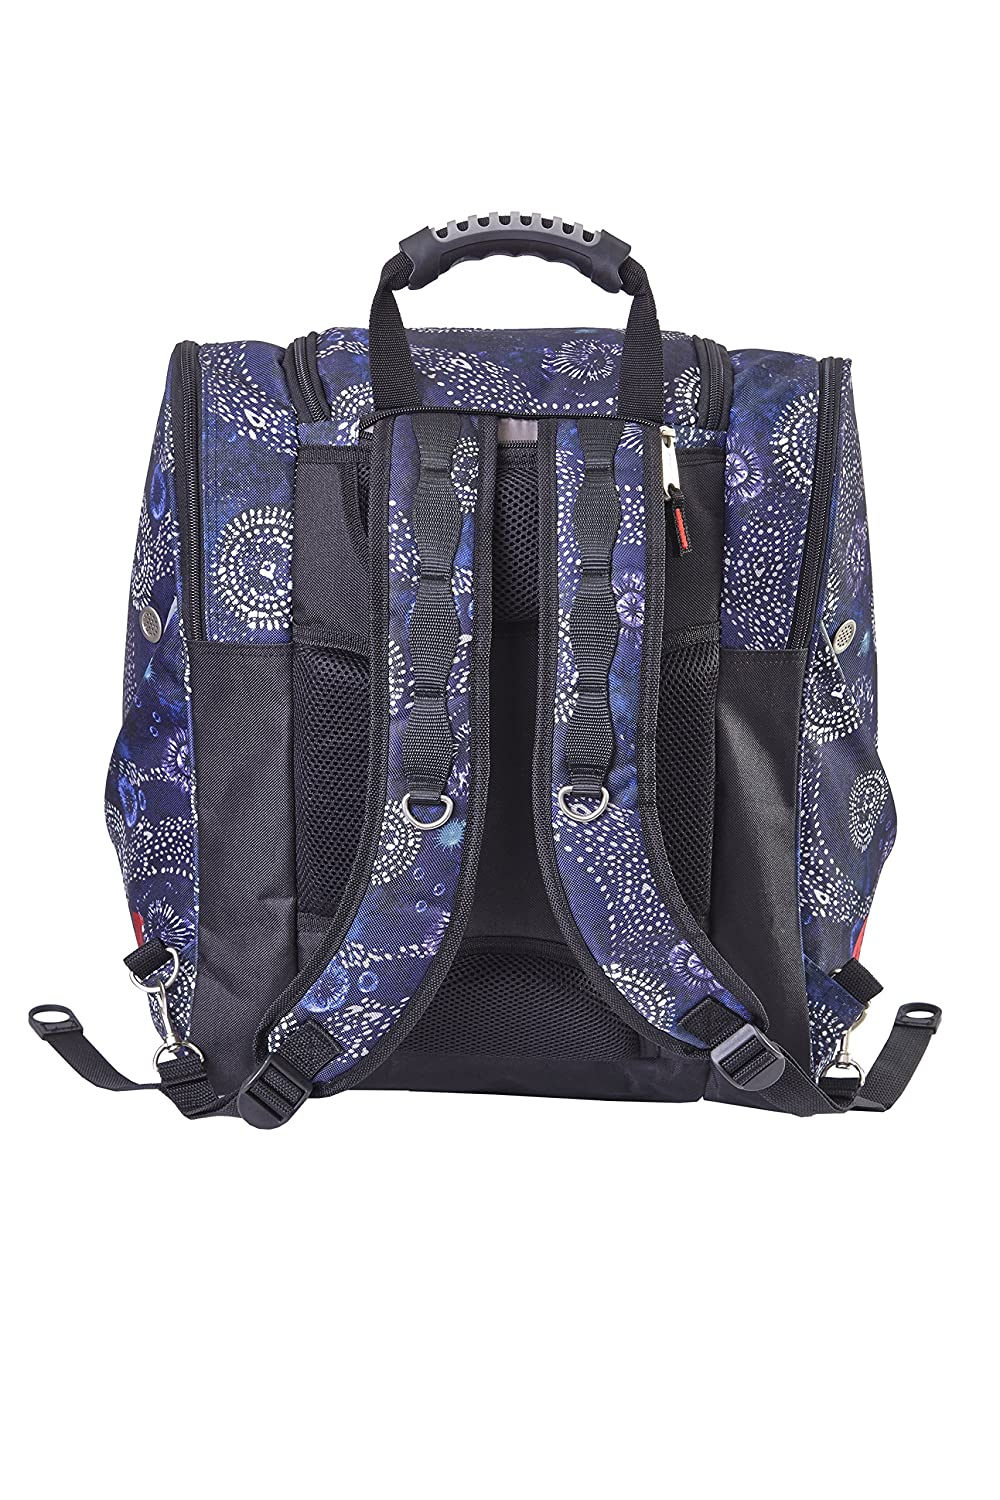 SNOWBOARD BOOTS, HELMET, GOGGLES, GLOVES HOLDS EVERYTHING Athalon Sportgear 330BAK Athalon EVERYTHING BOOT BAG//BACKPACK SKI